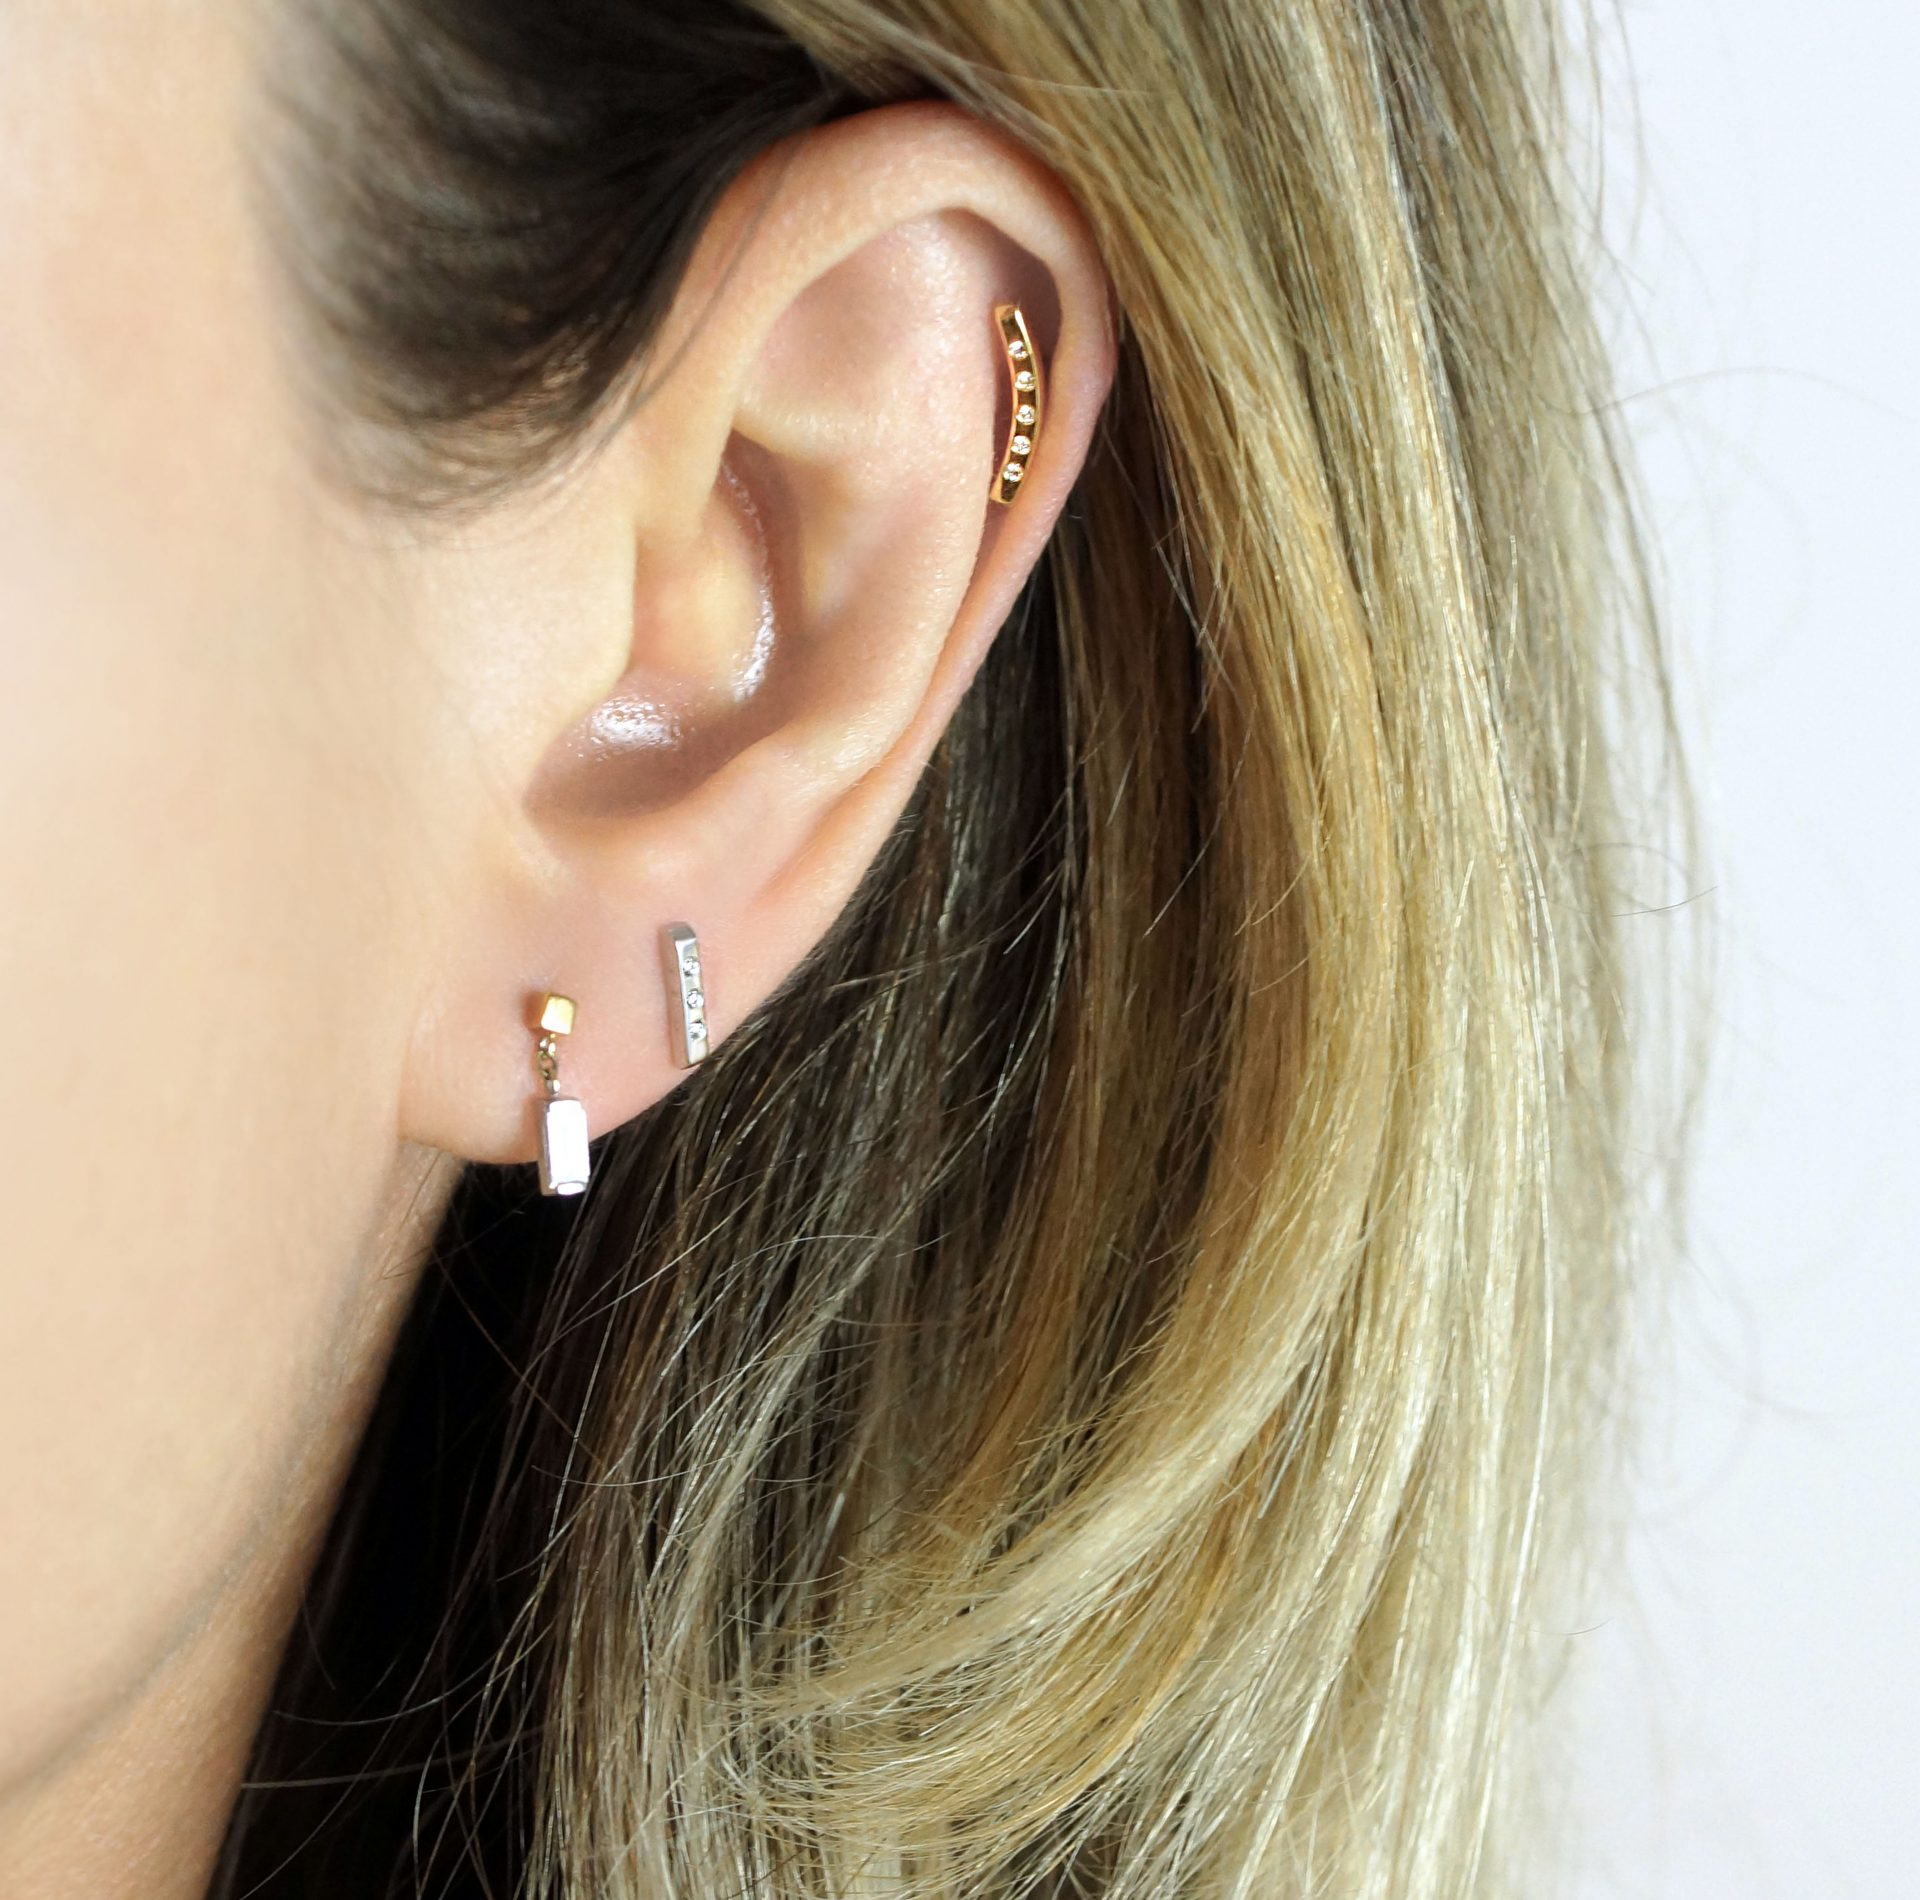 18k-Solid-Gold-Cartilage-Earrings-Luxury-Piercings-Lena-Cohen-London